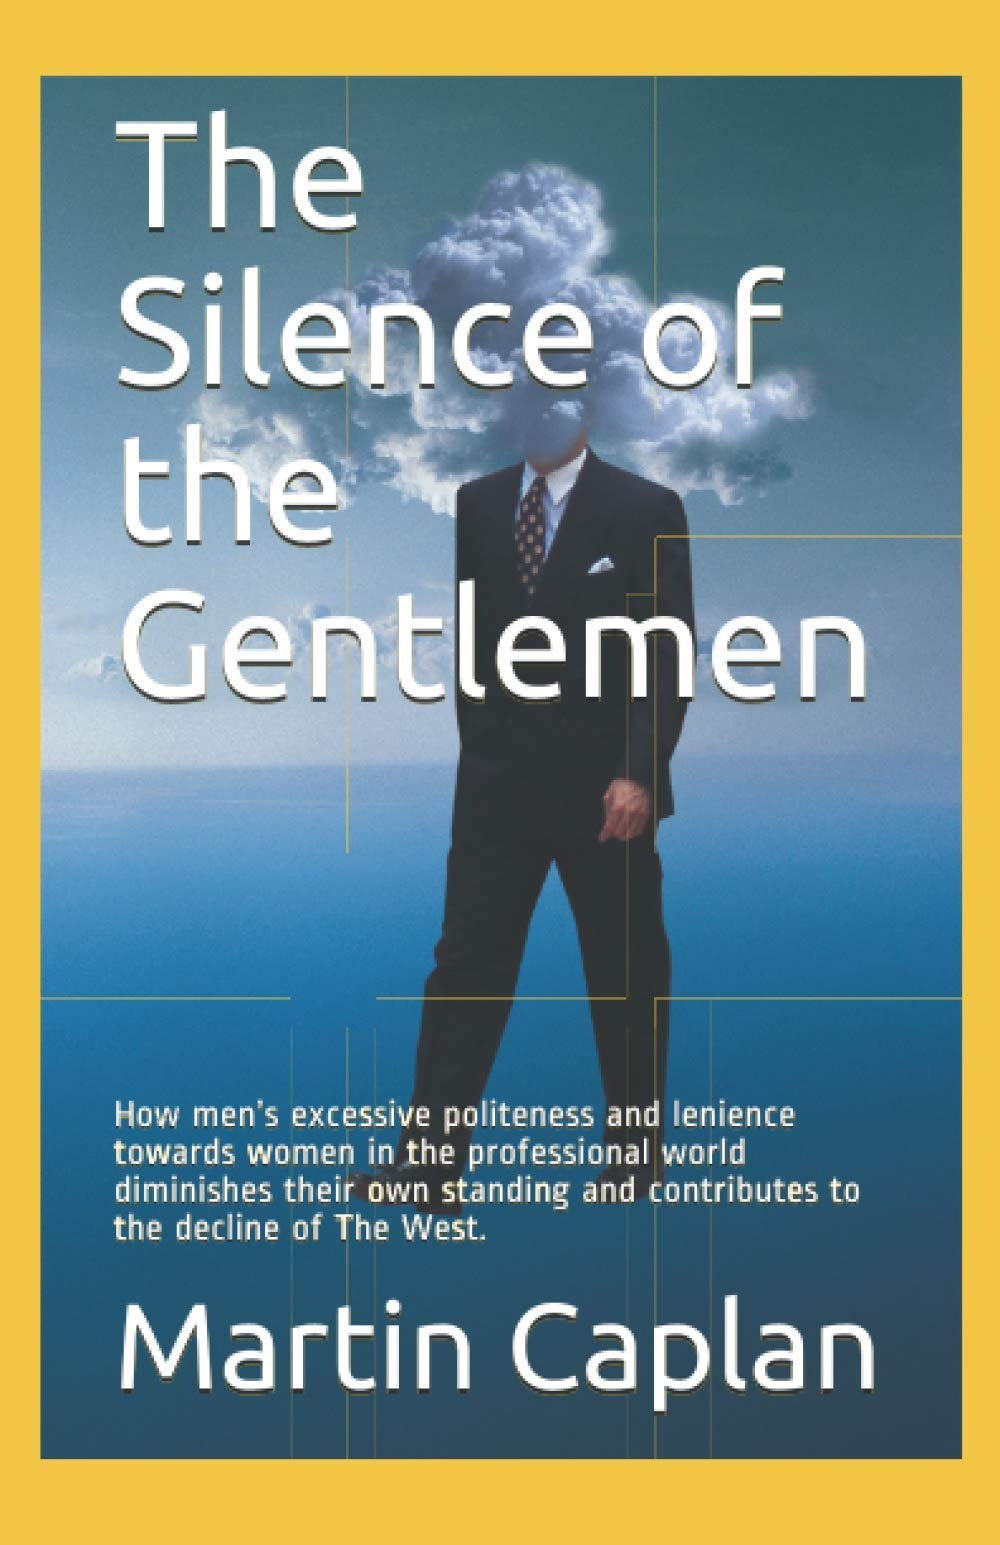 The Silence of the Gentlemen